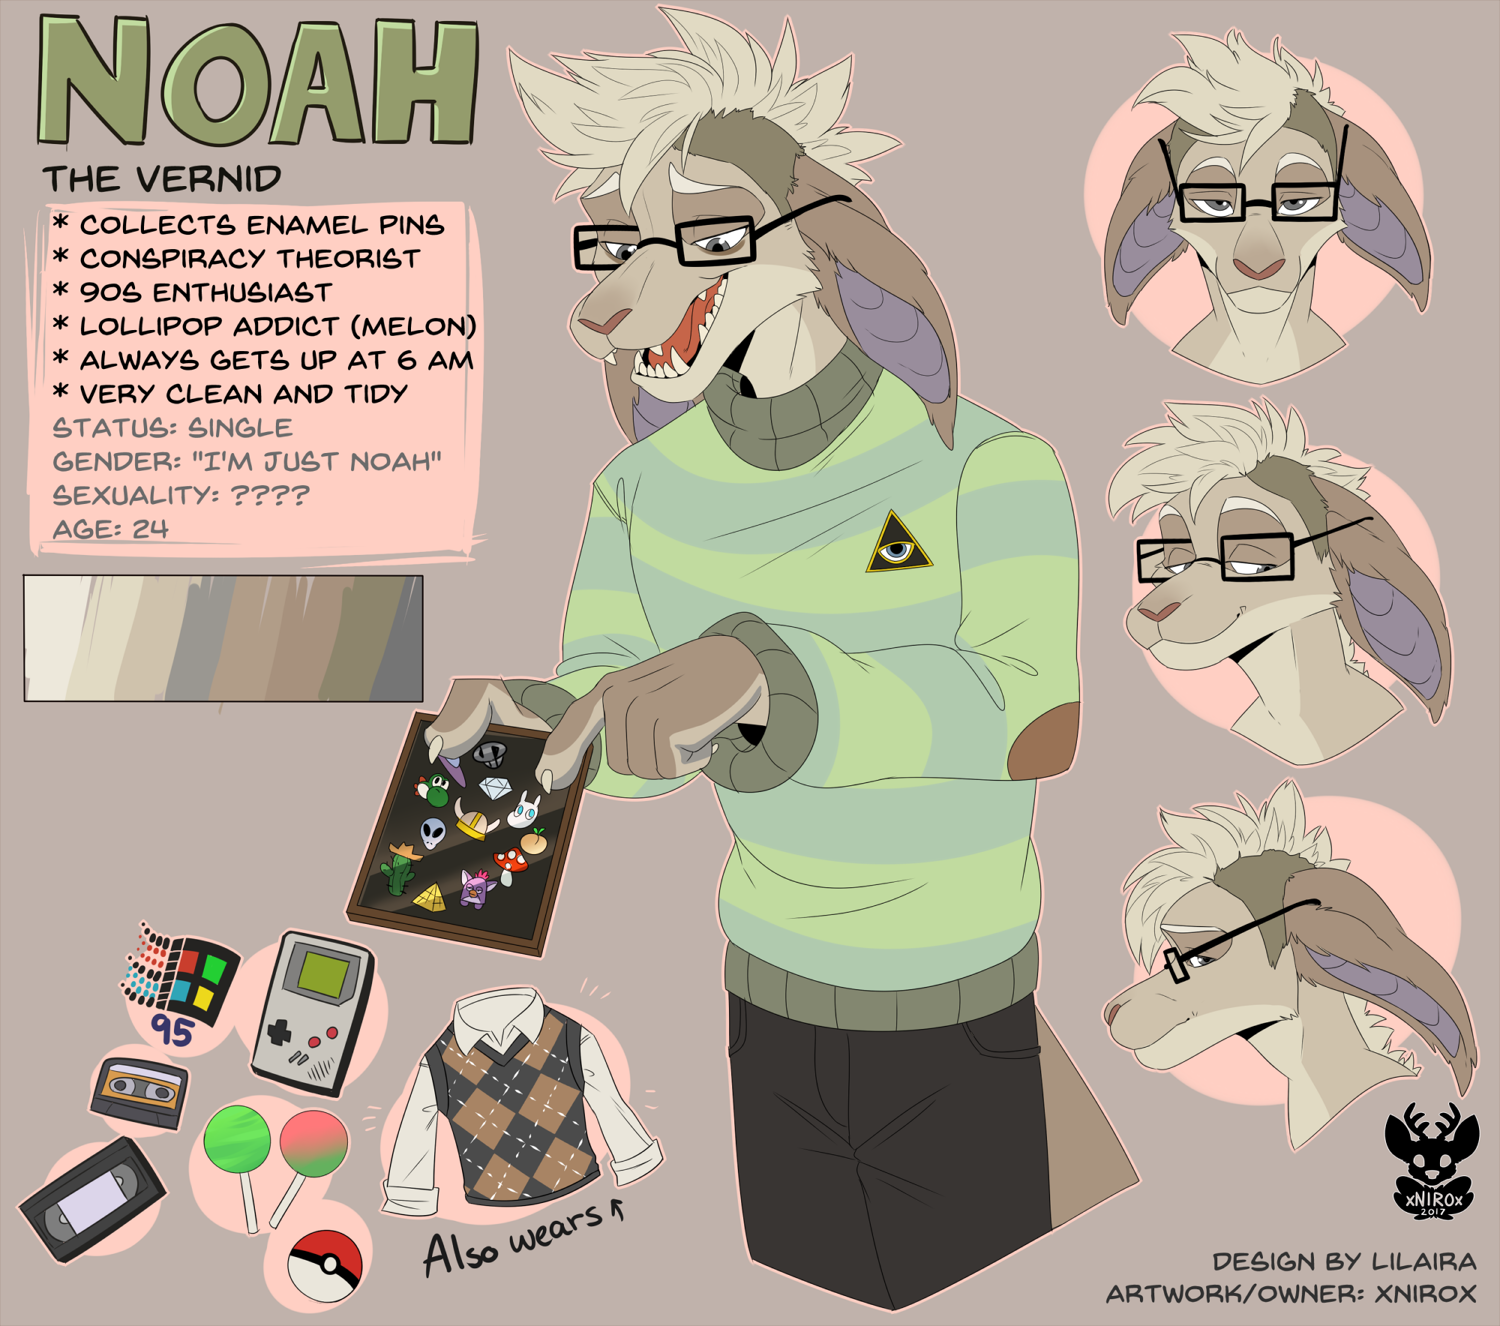 Noah the Vernid by xNIR0x